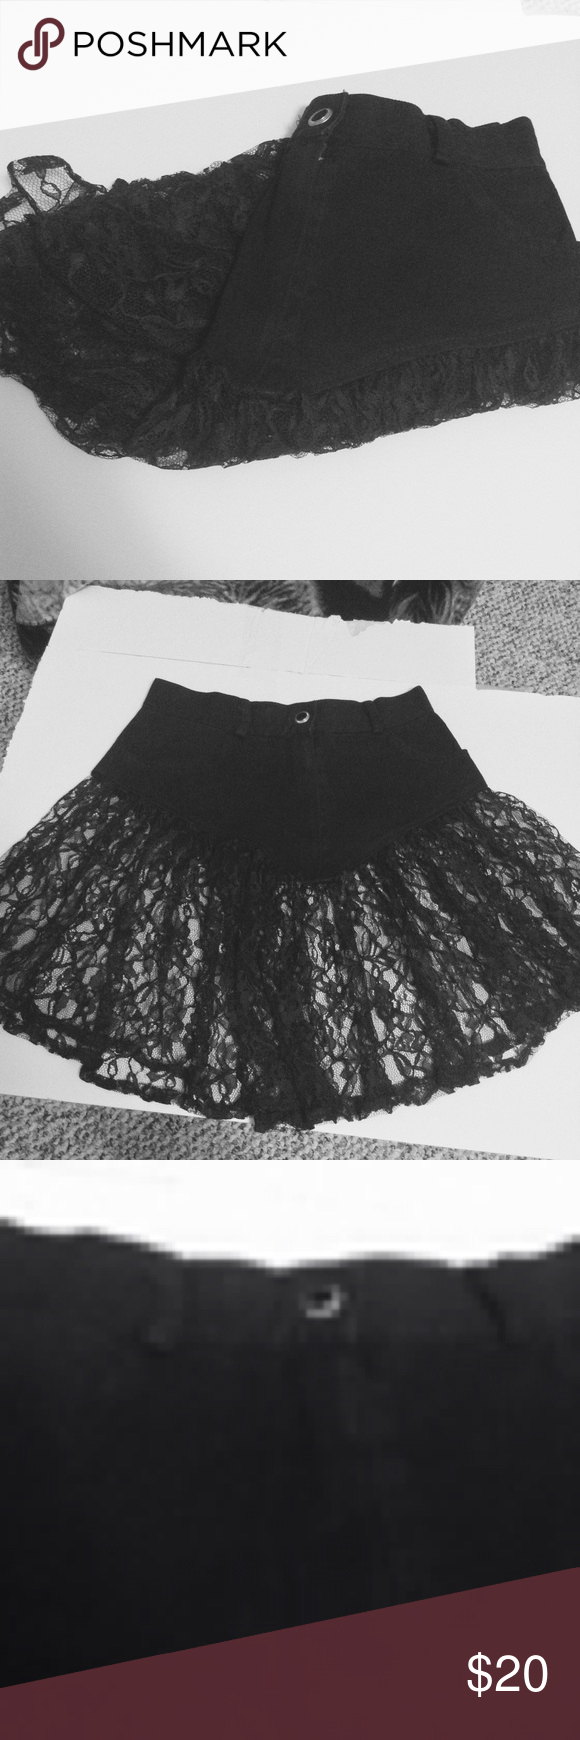 90s Vintage Black Denim Lace Skirt ...Feel free to bundle what you wish, no offer will be declined, only accepted or countered until a common price is found 😊📦📬 ... Thank you for browsing and have a great day! Jerry Leigh Skirts